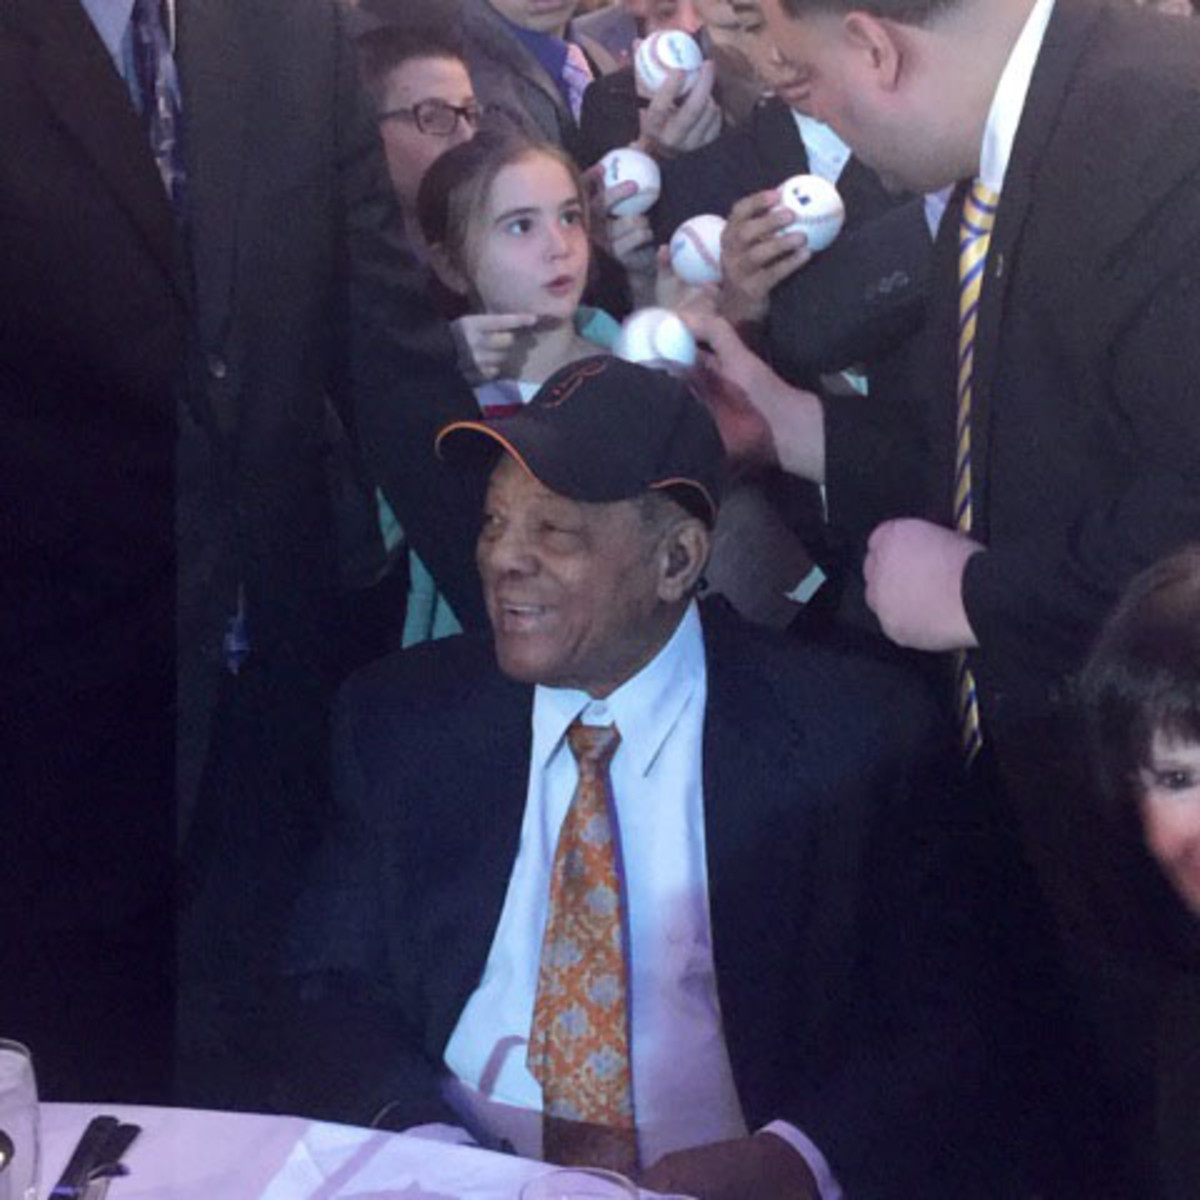 It's a Willie Mays free signing session – for kids only. A few dozen got lucky as Mays signed at his table on the main floor.